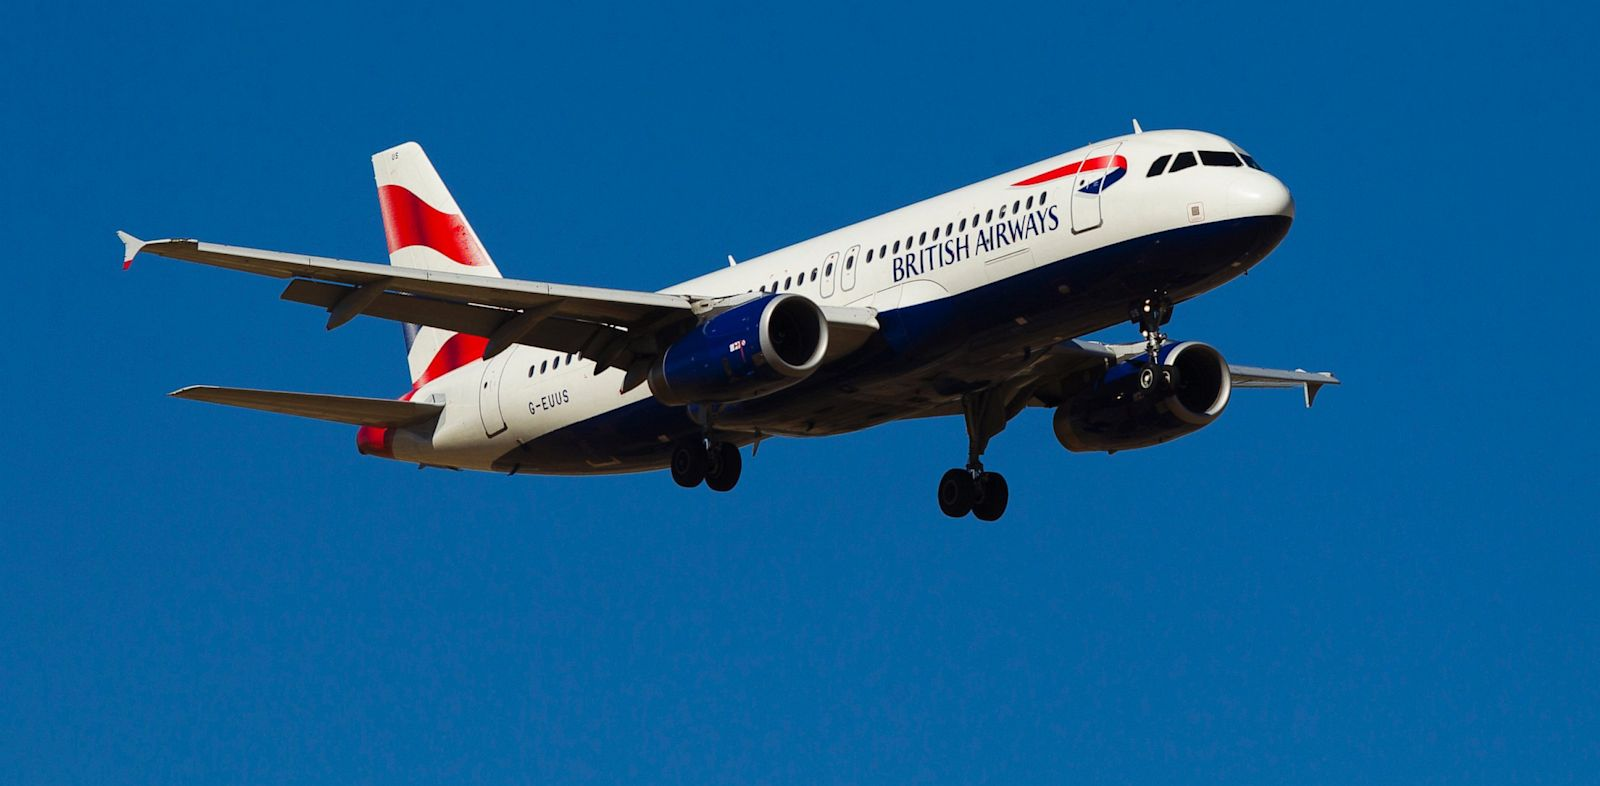 PHOTO: A British Airways passenger jet prepares to land at Madrid Barajas airport in Madrid, Spain, Aug. 6, 2013.